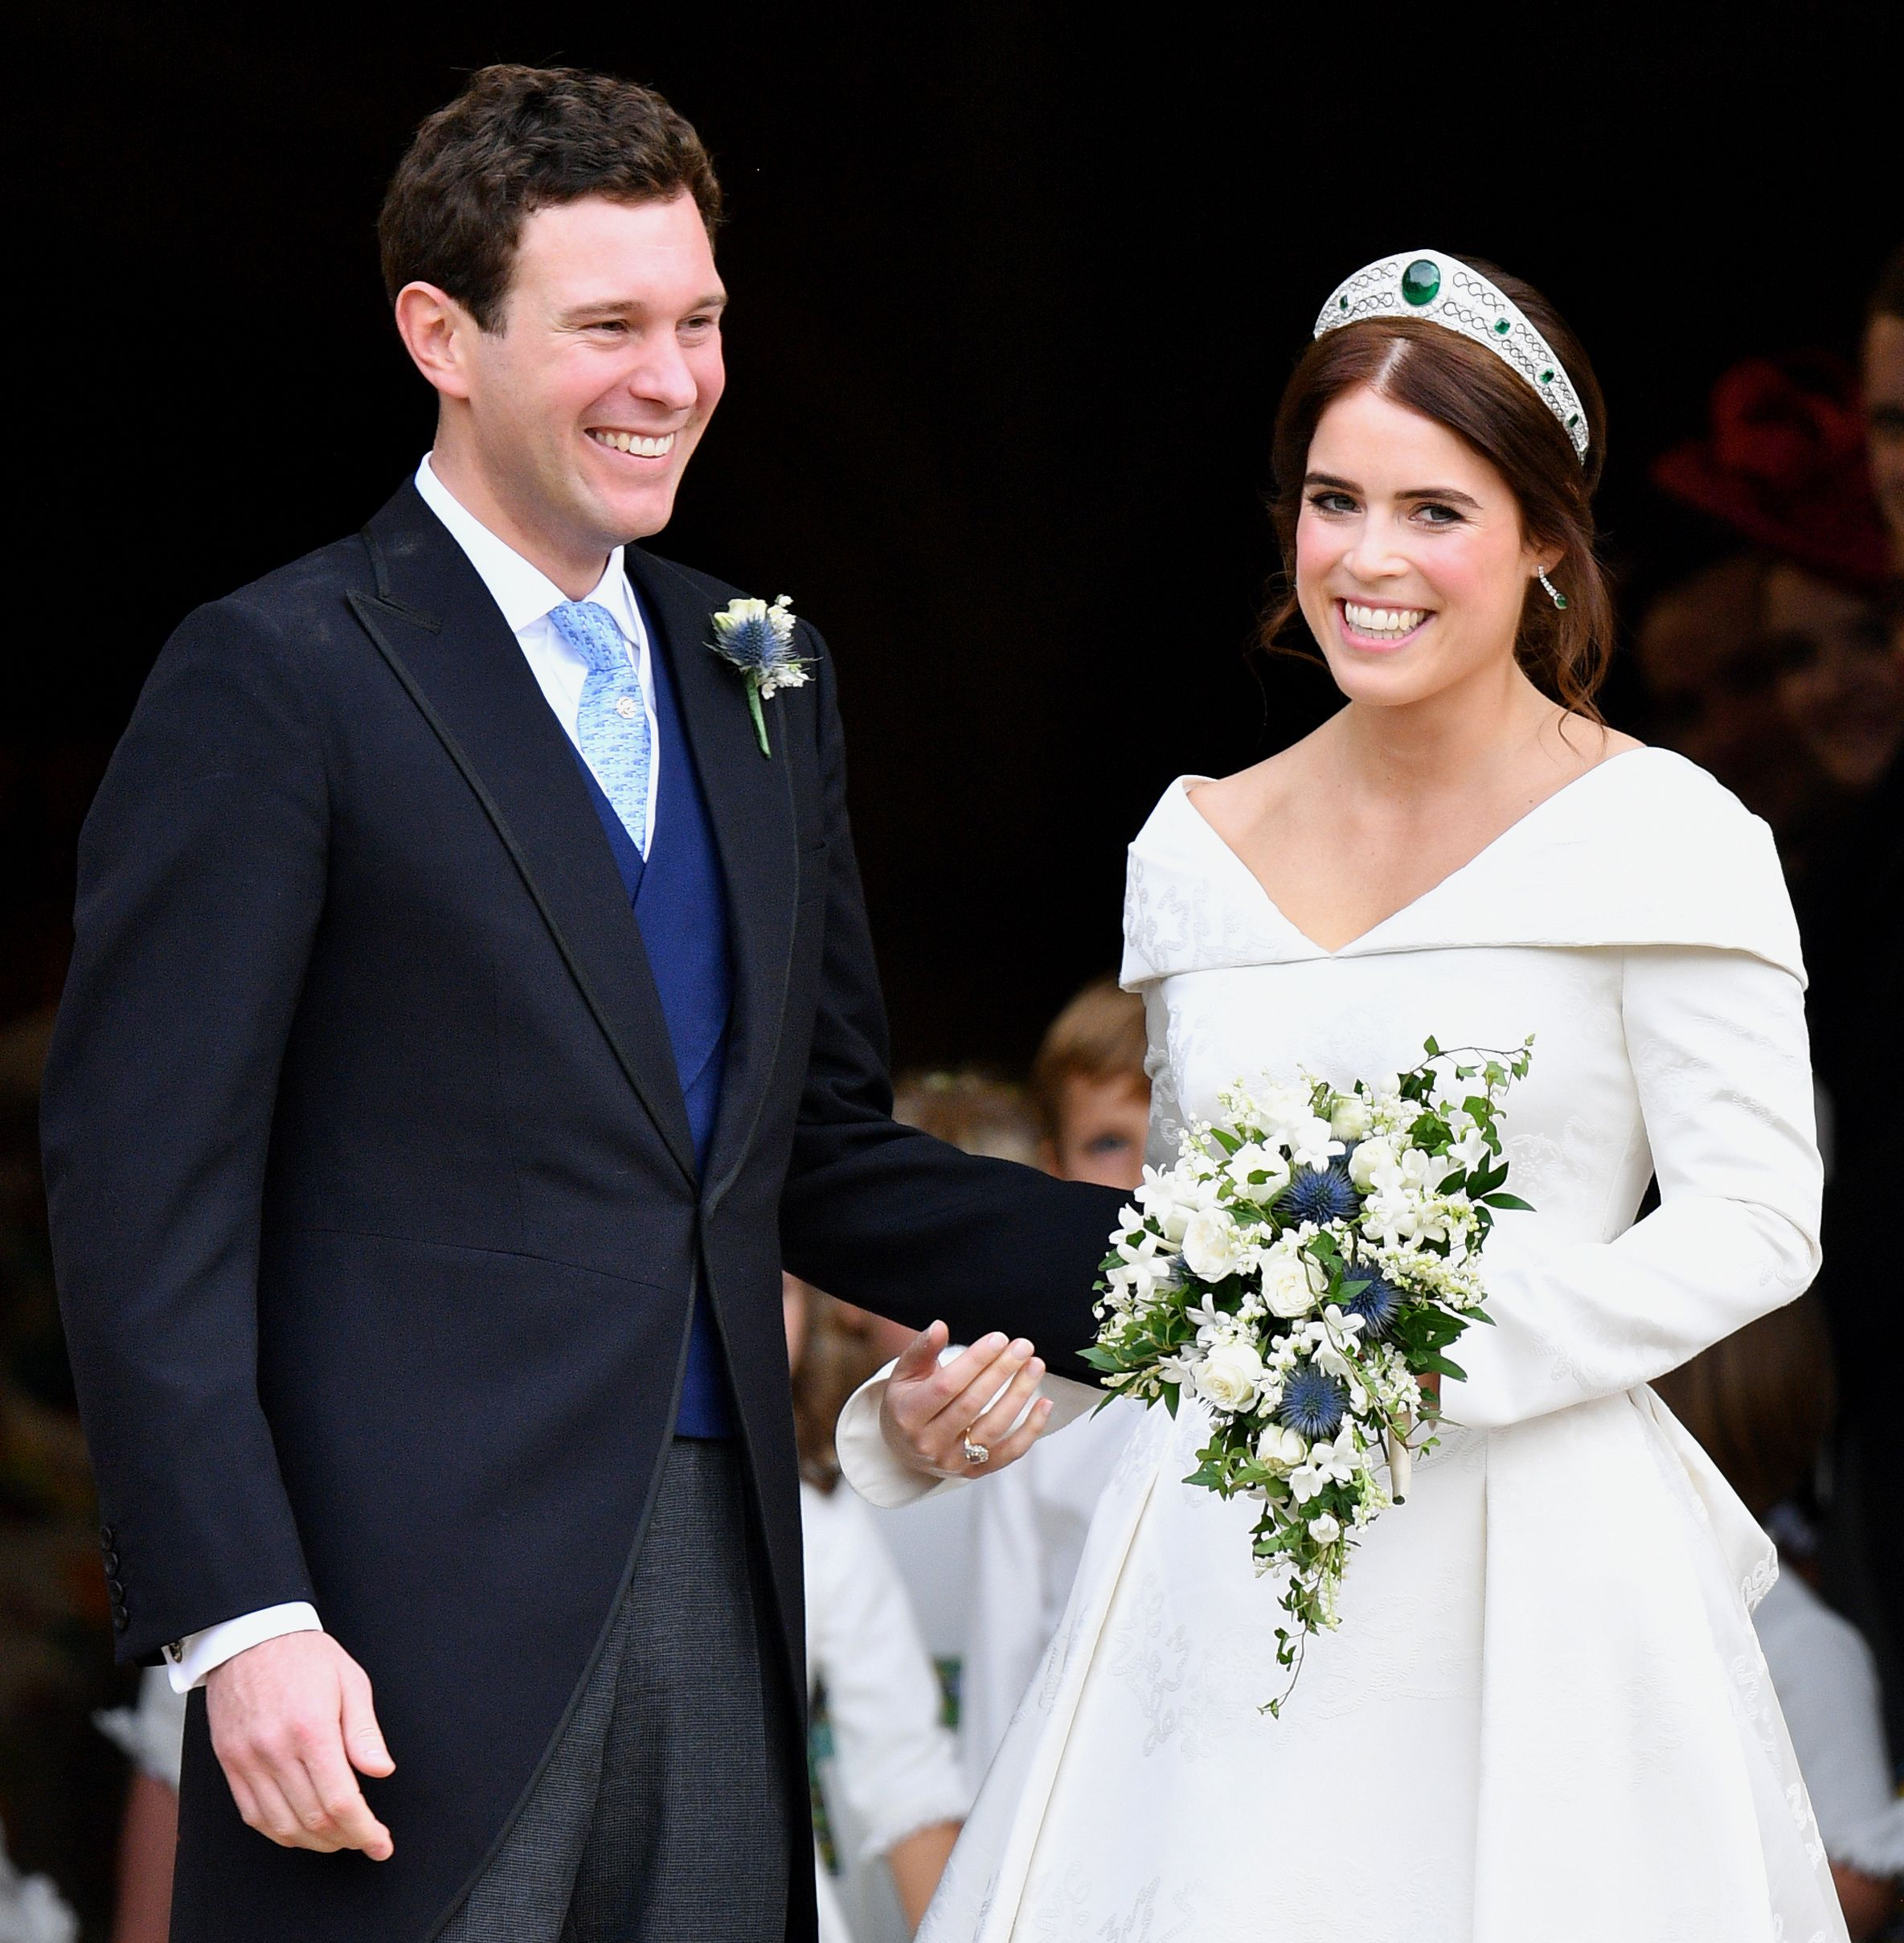 Princess Eugenie and Jack Brooksbank leaving St George's Chapel after their wedding on October 12, 2018 in Windsor, England   Source: Getty Images